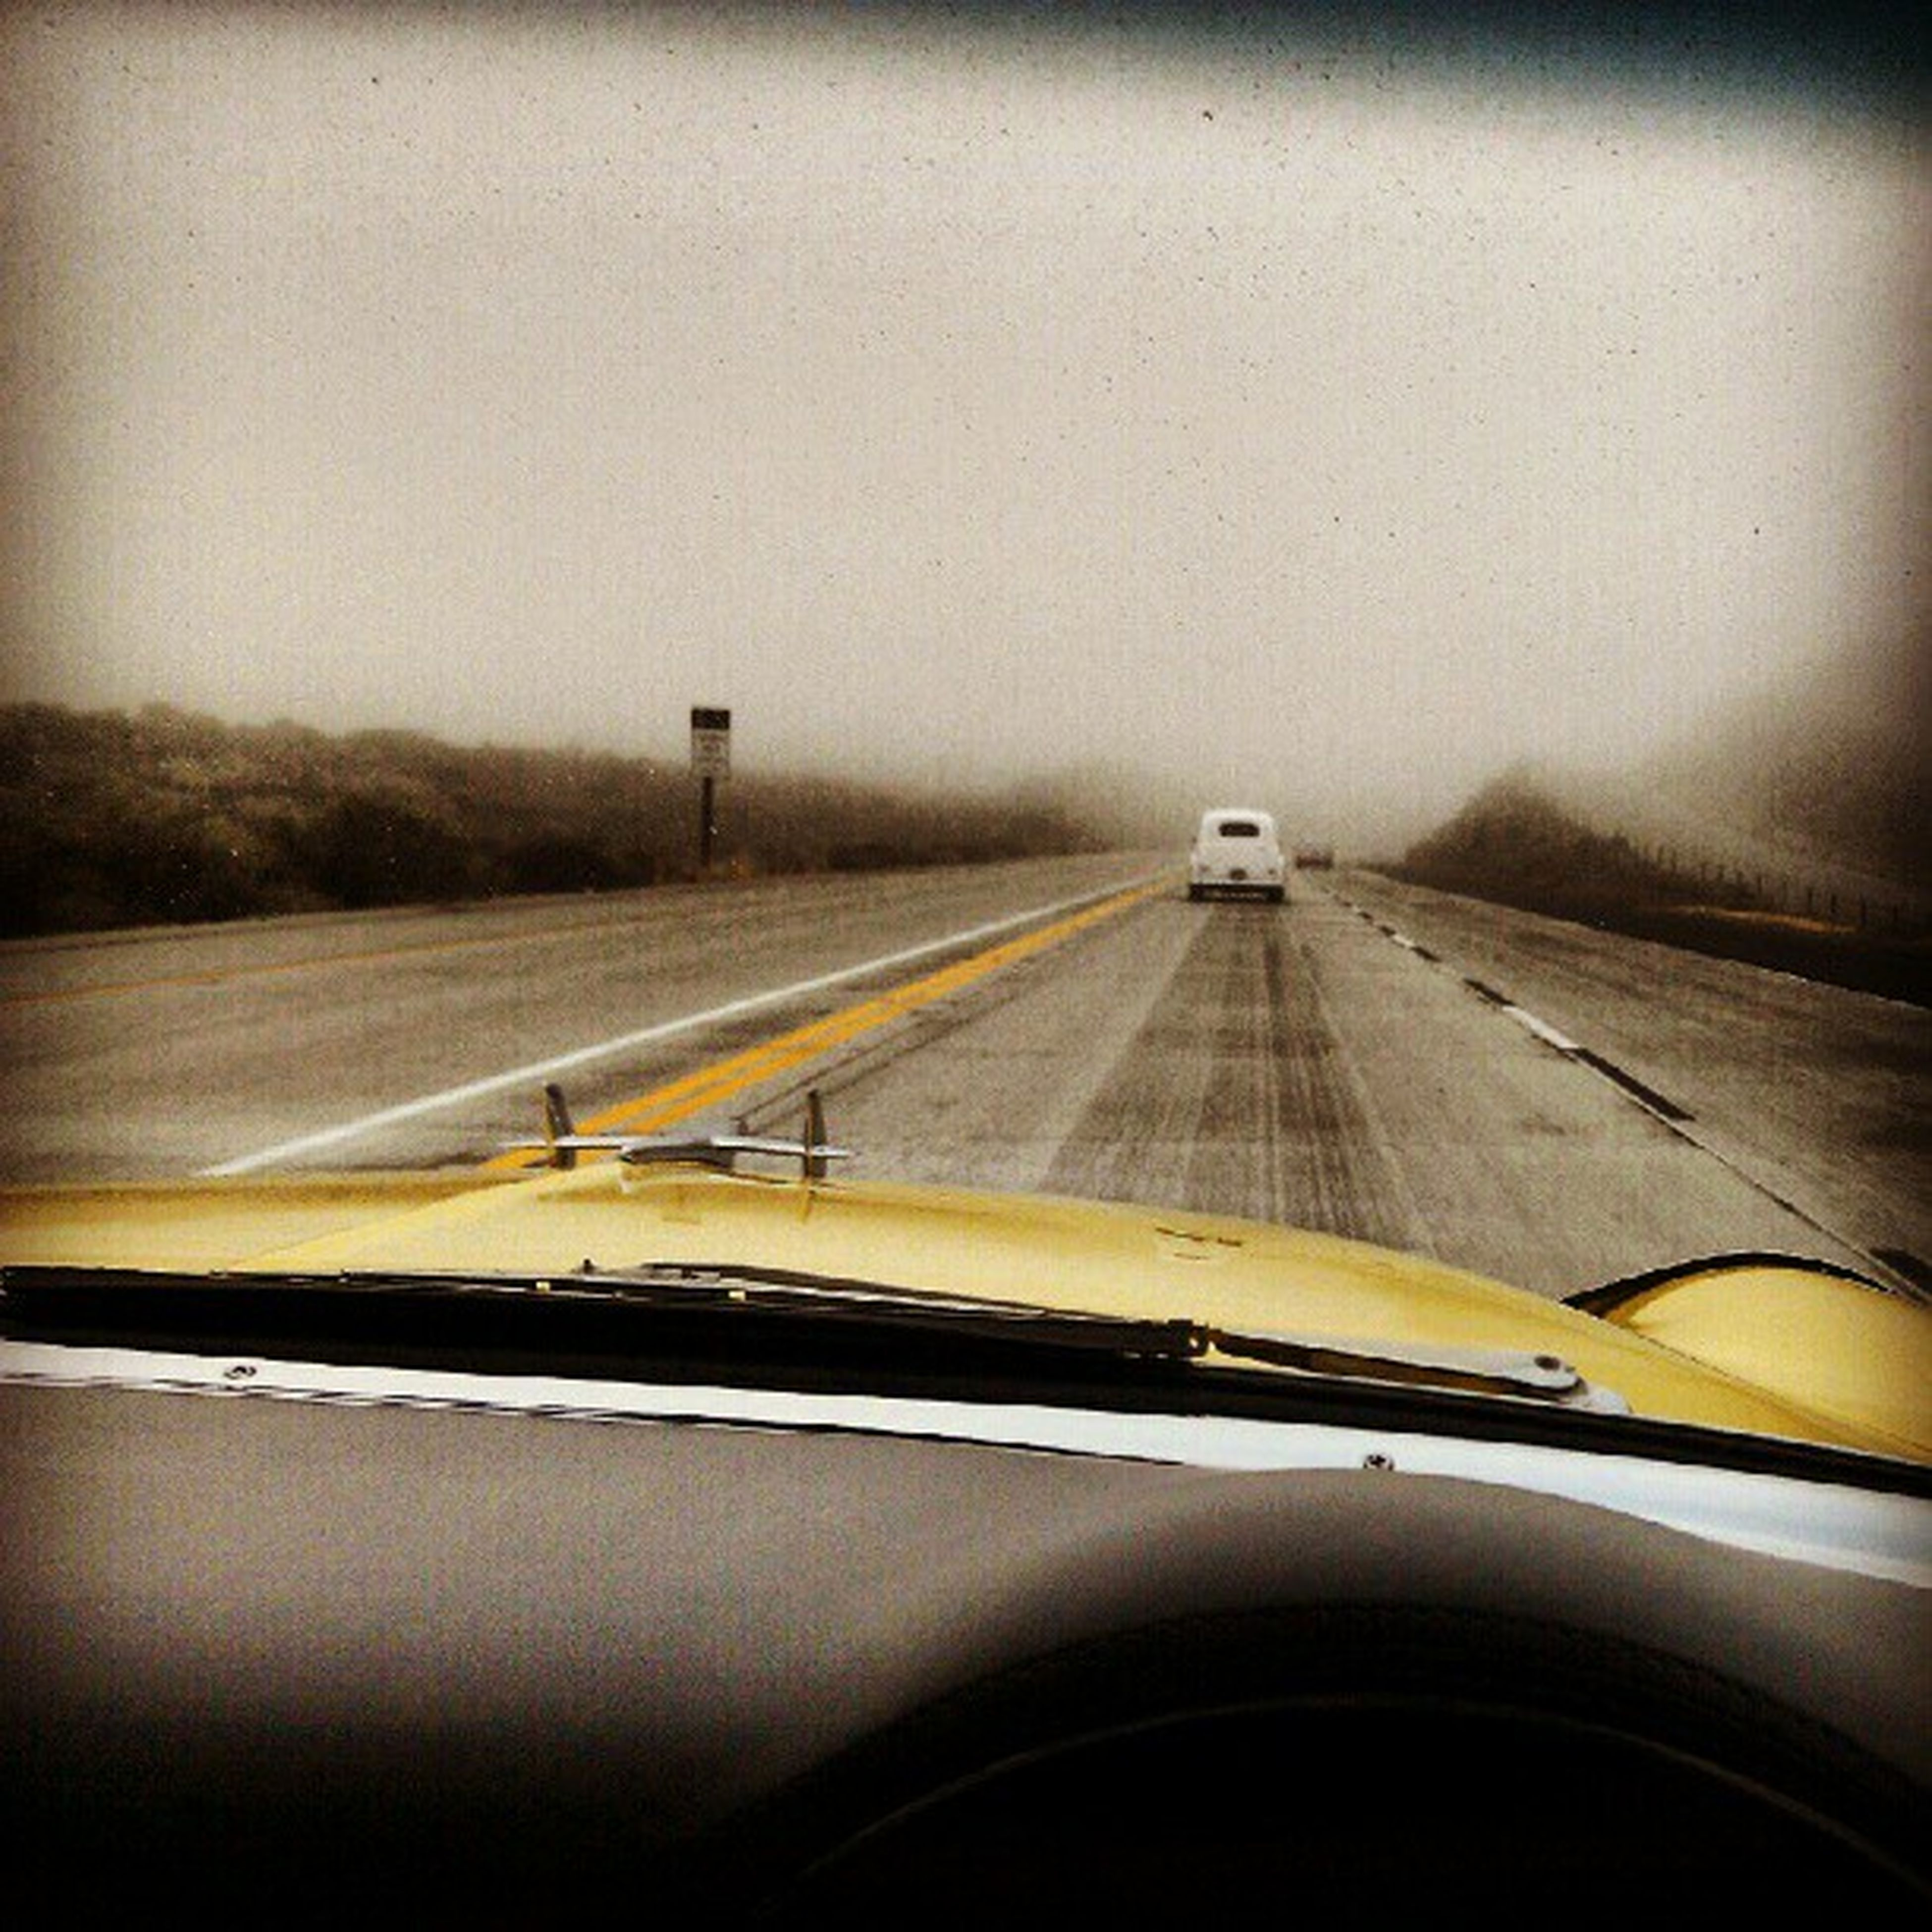 Just hooked up with our traveling pals in their 48 Ford Sedandelivery ... Where did this Fog come from? This is the desert!